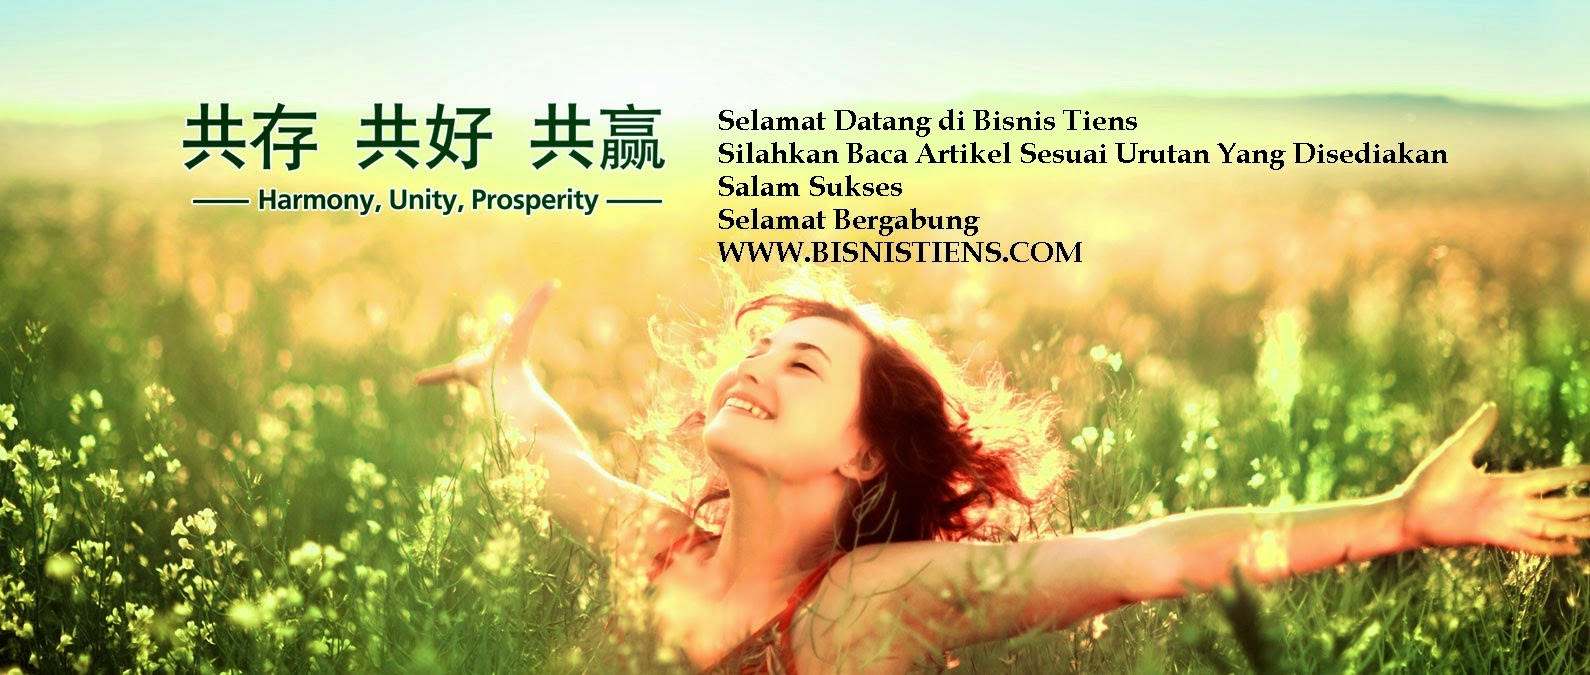 Bisnis Tiens MLM Multi Level Marketing Tianshi Bonus Besar Tianshi Indonesia